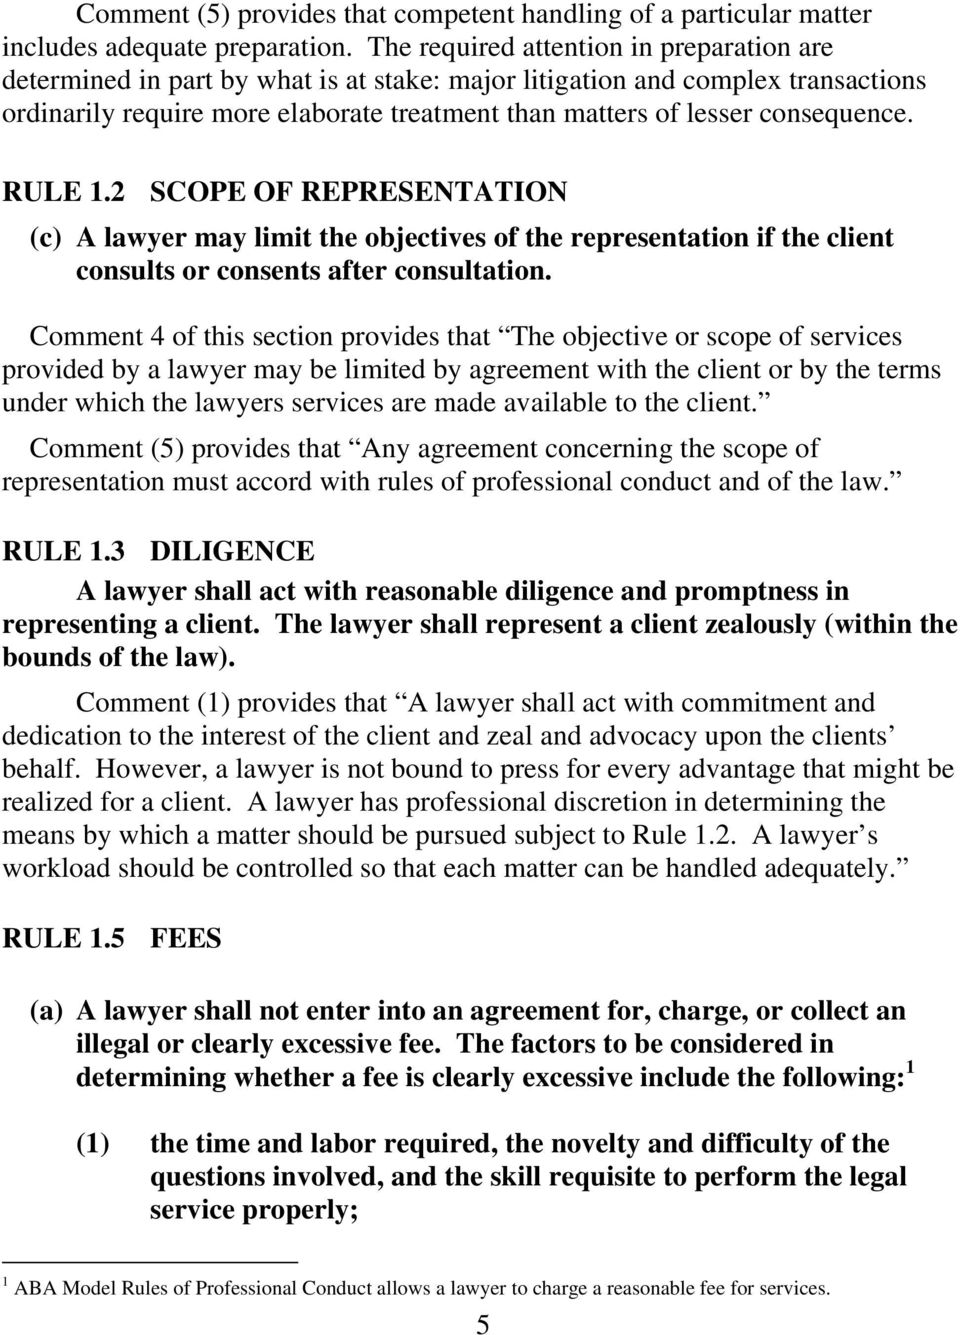 consequence. RULE 1.2 SCOPE OF REPRESENTATION (c) A lawyer may limit the objectives of the representation if the client consults or consents after consultation.